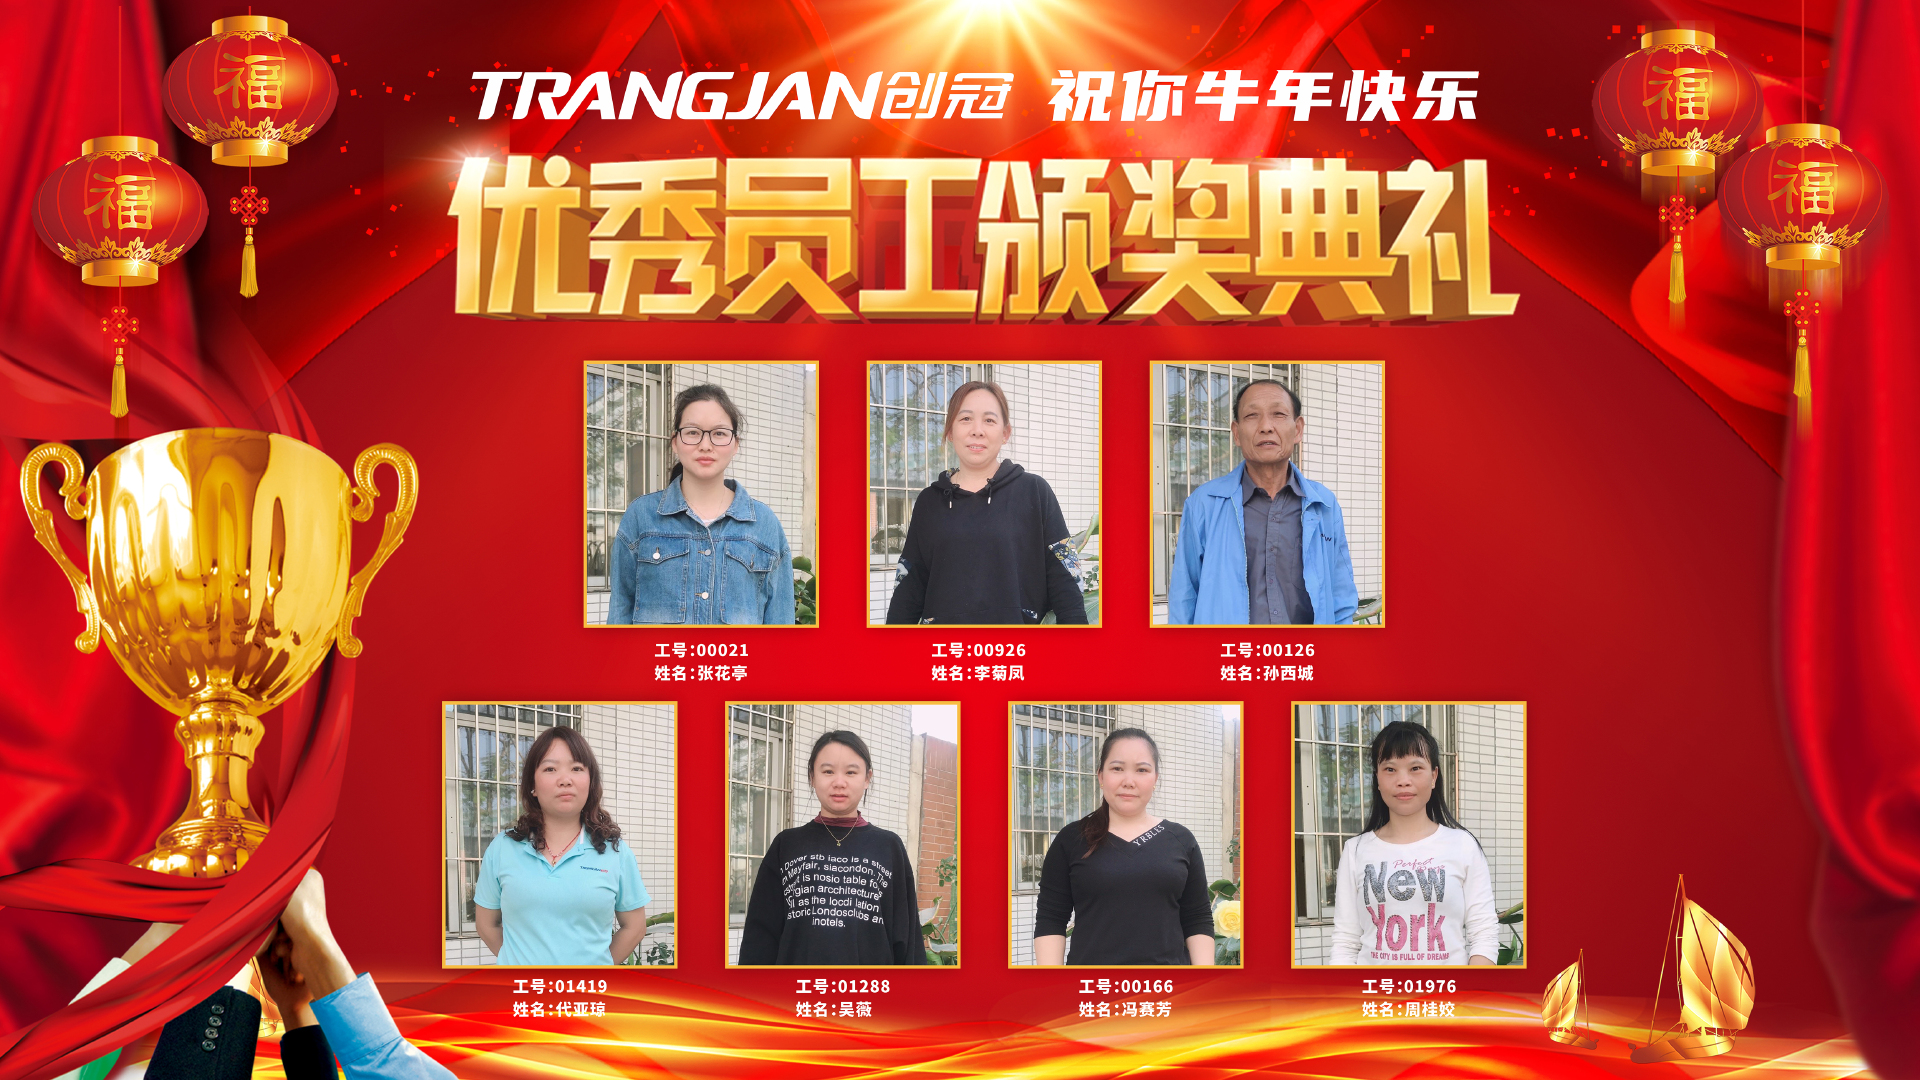 Trangjan's 2020 Excellent Staff Recognition